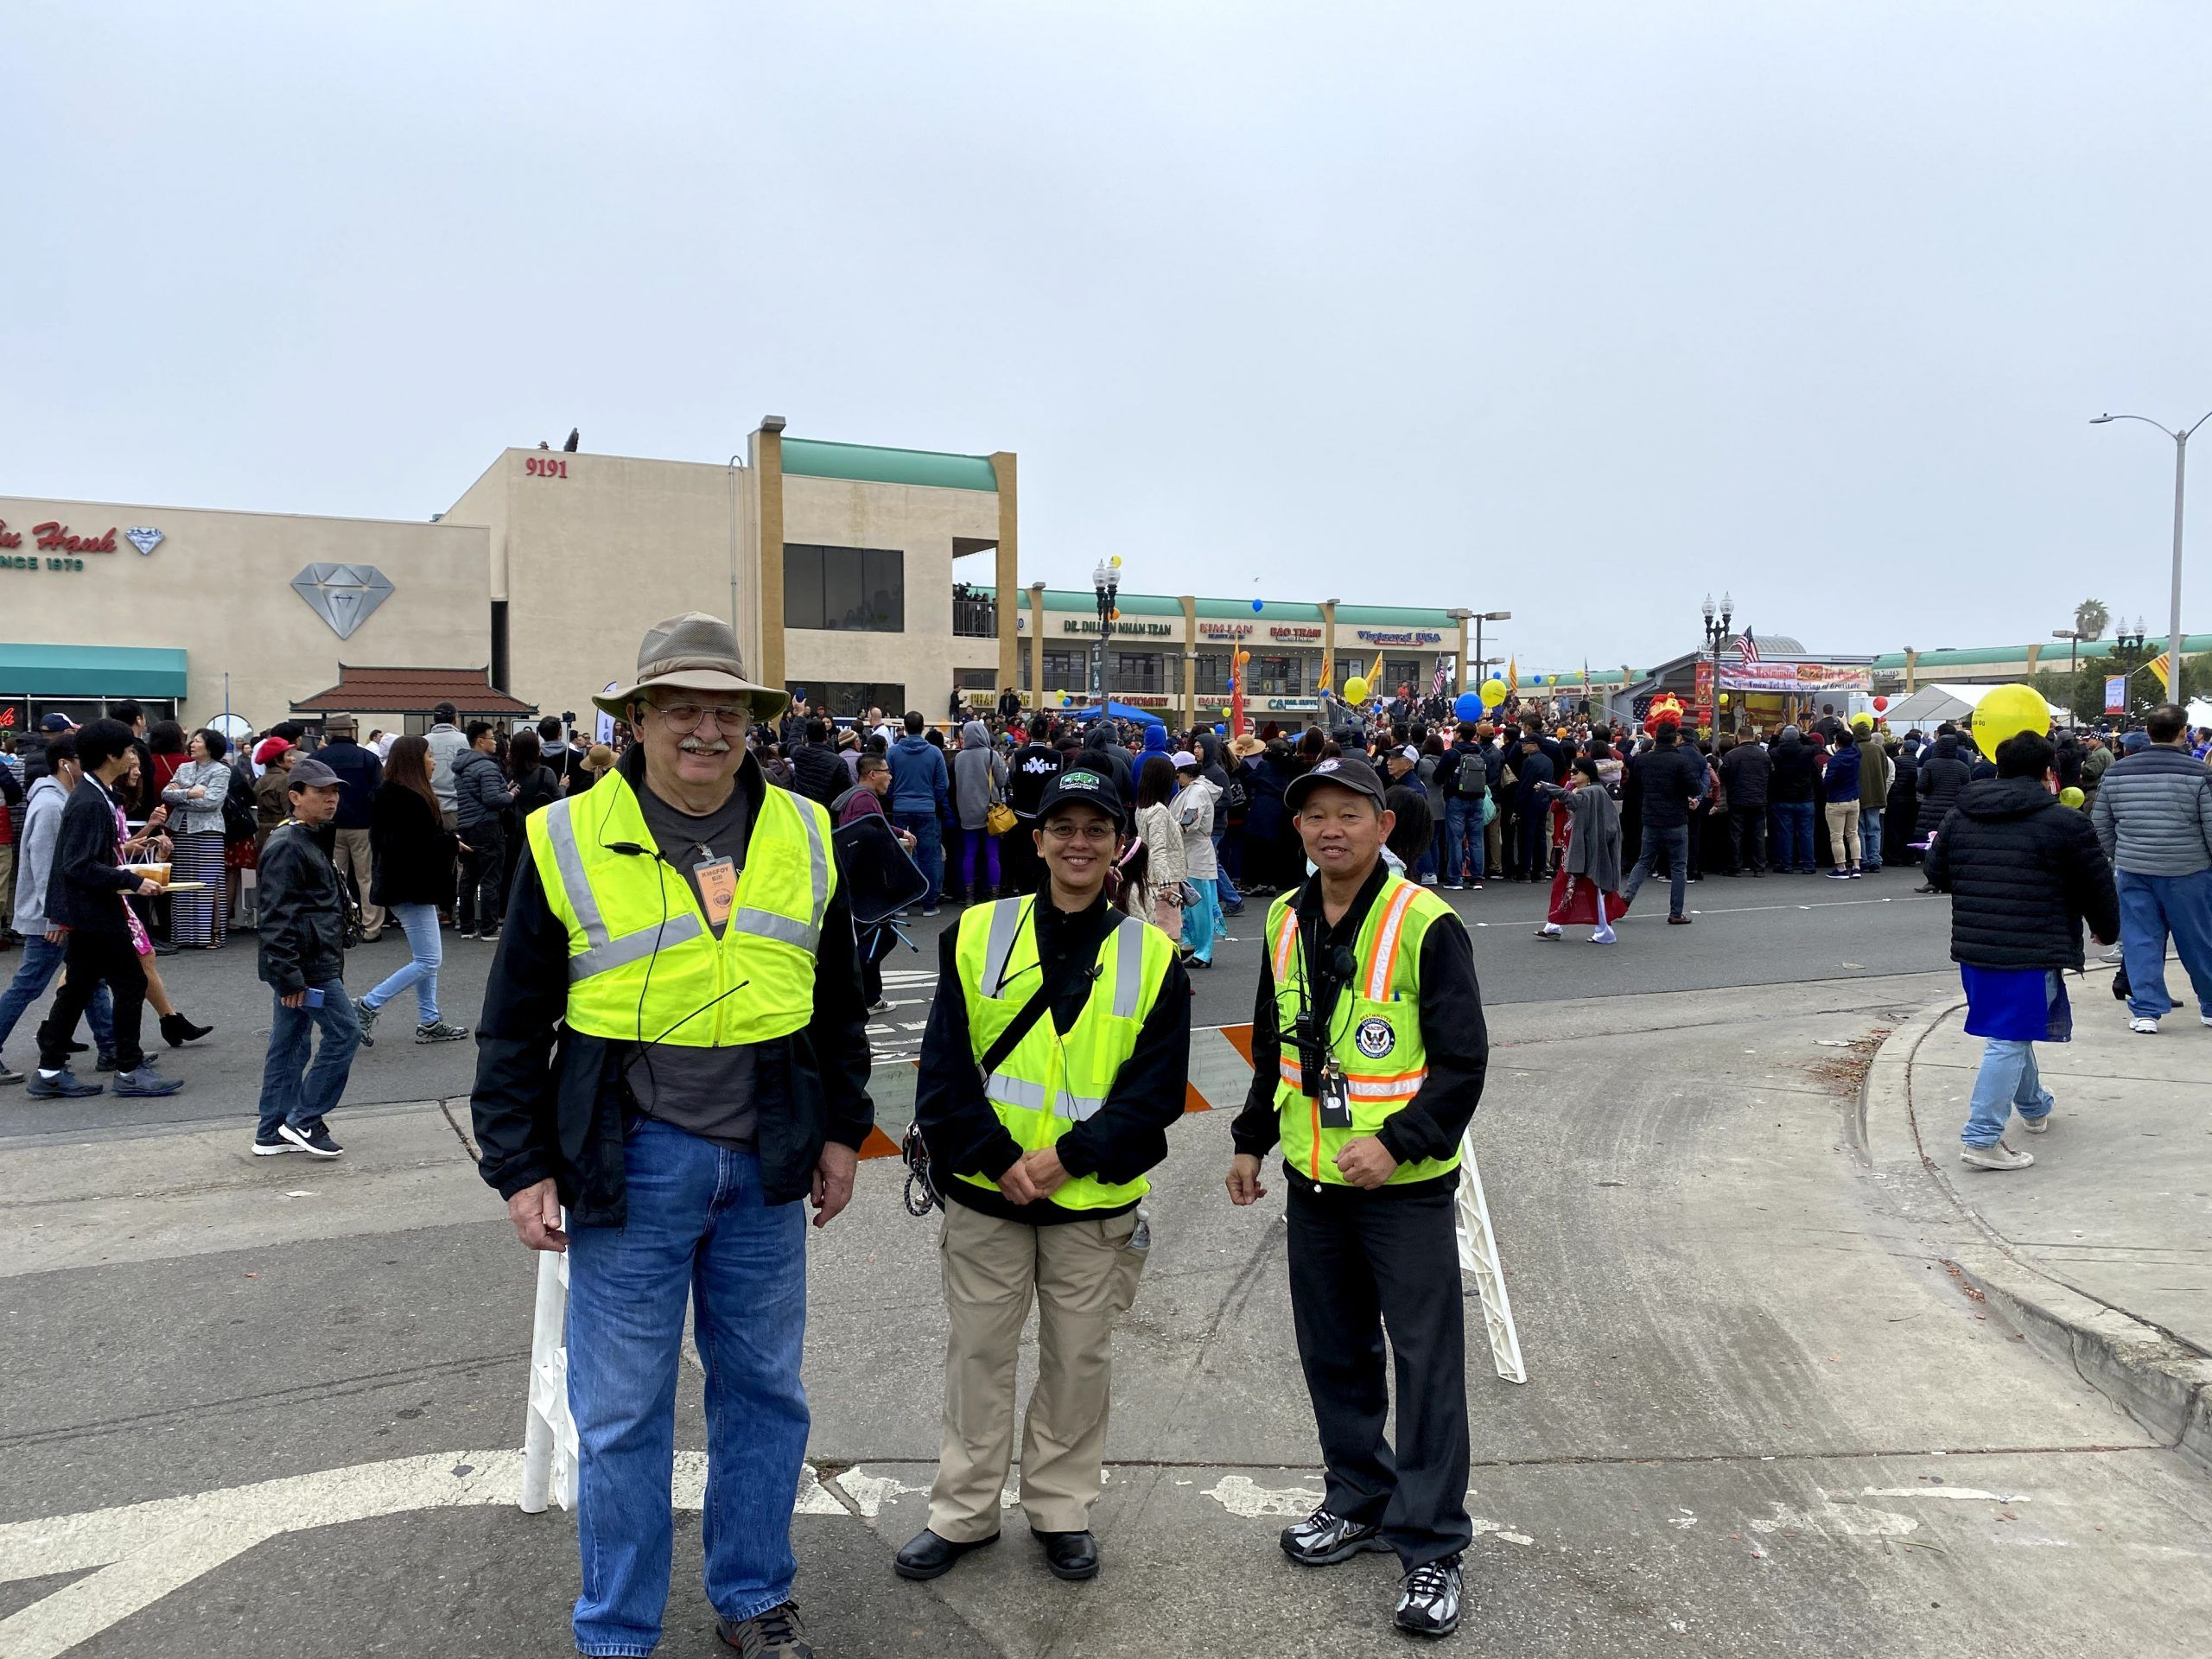 2020 Westminster TET Parade In Little Saigon